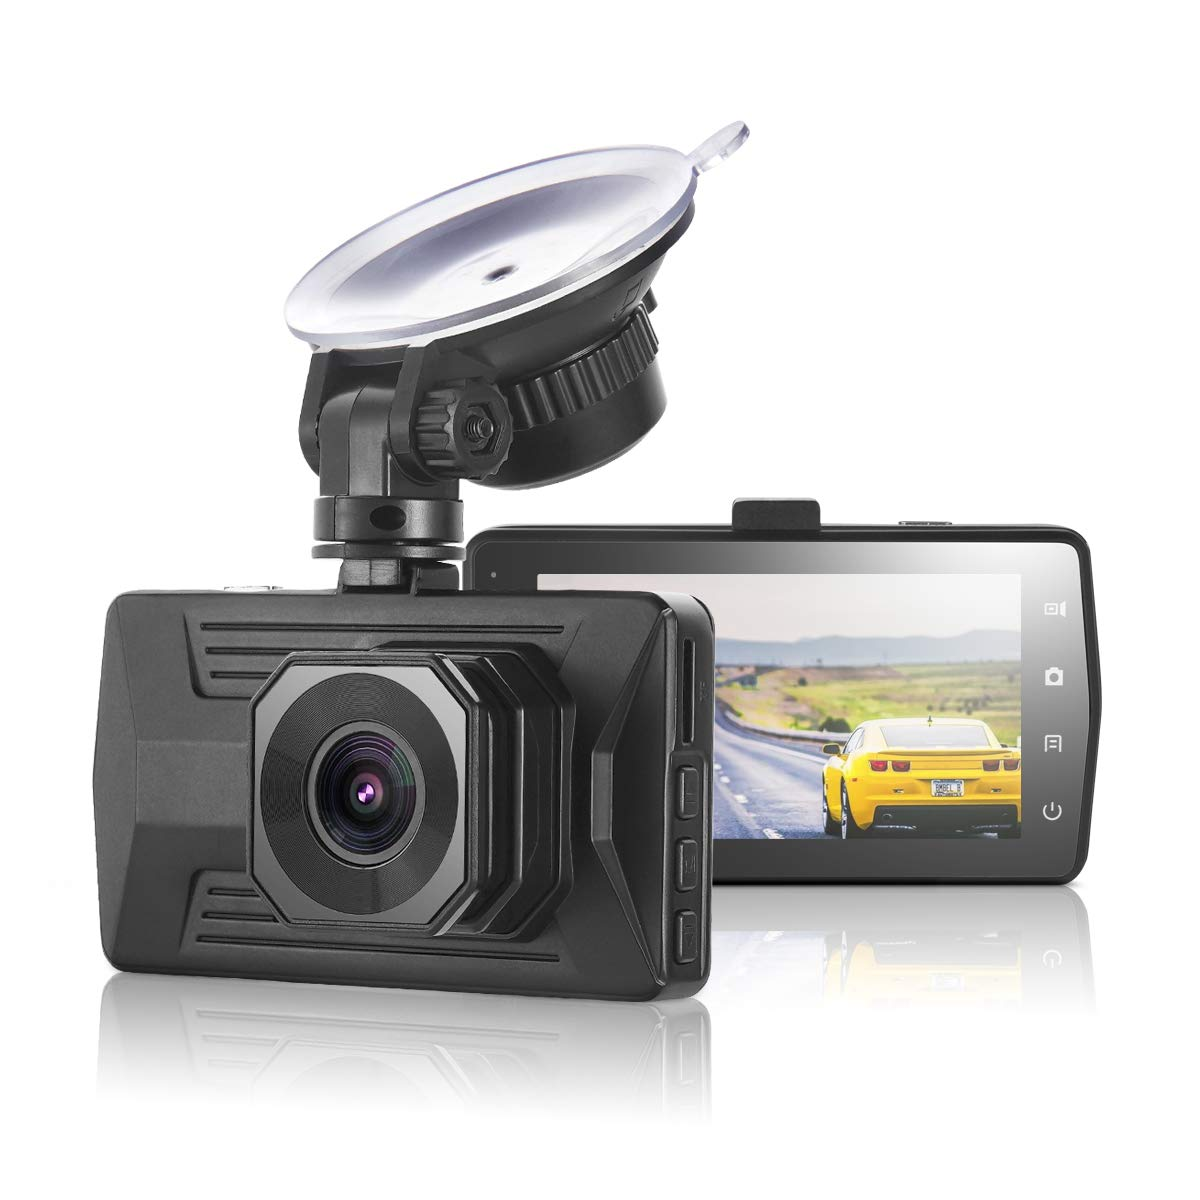 ULU FHD 1080P Car Dash Cam Dash Board Camera 3.0' IPS Screen 170 Degree Wide Angle Car Recorder with WDR, G-Sensor, Motion Detection, Loop Recording